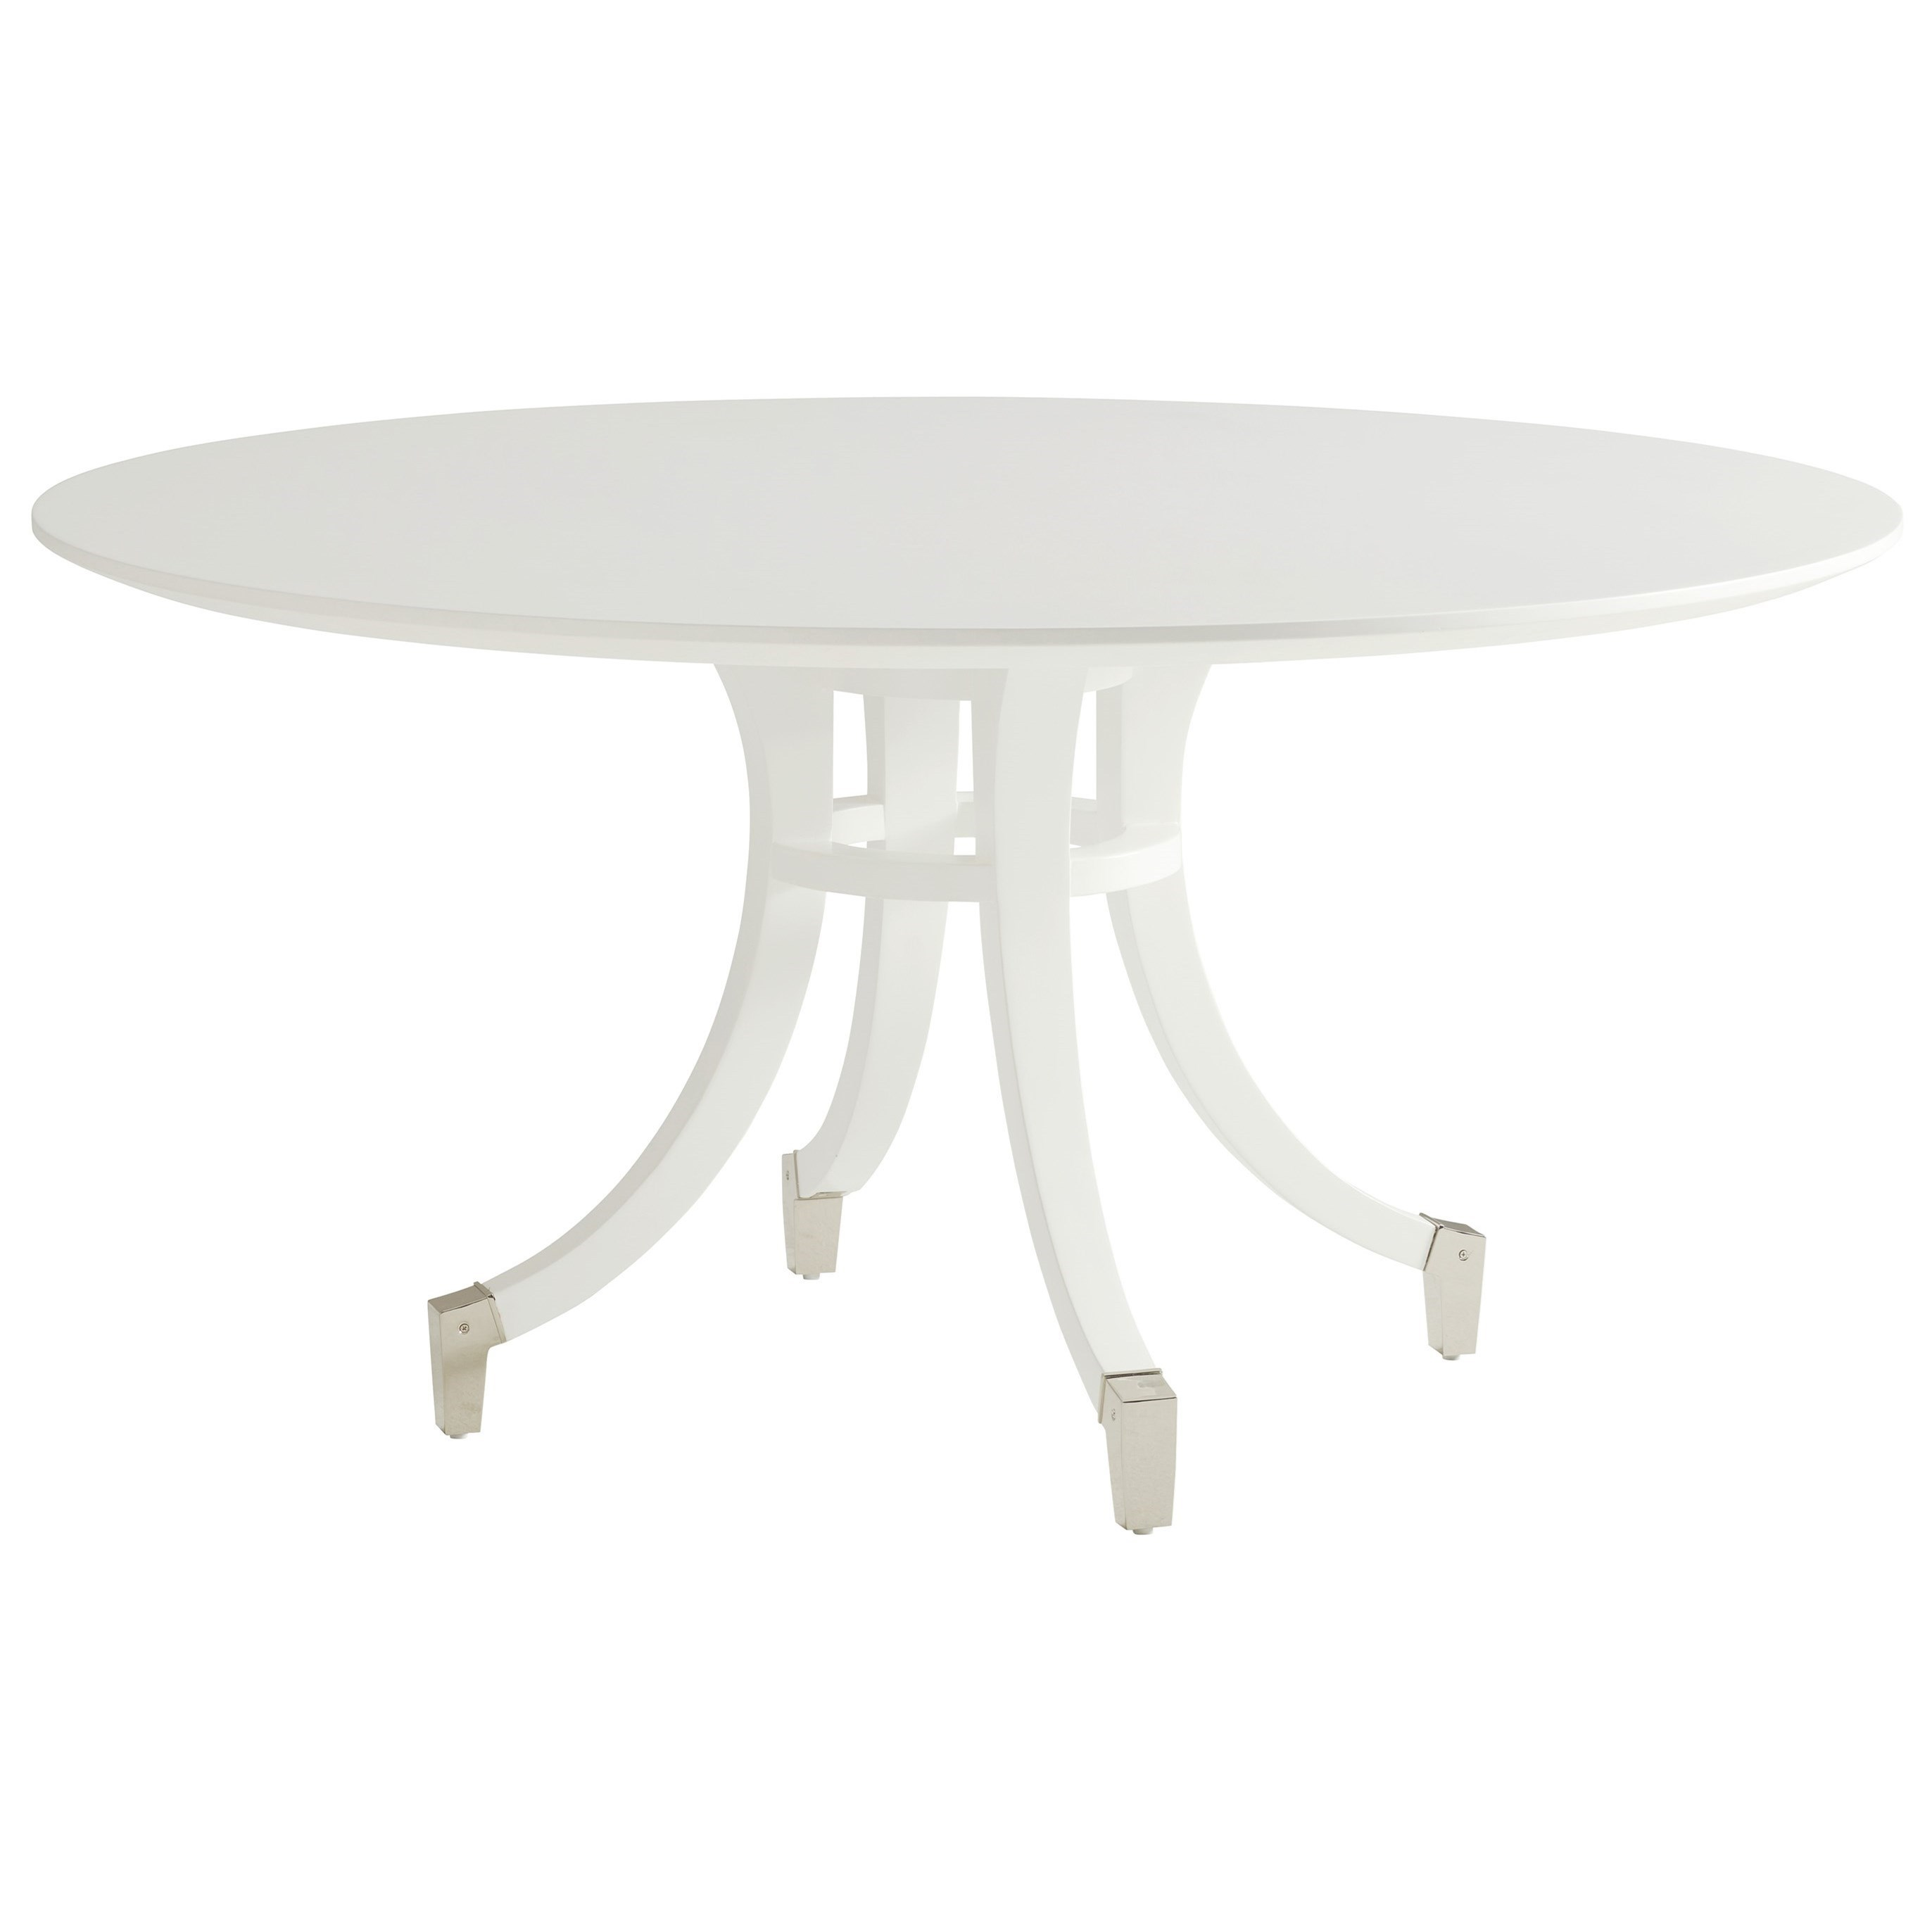 Avondale Bloomfield Round Dining Table by Lexington at Baer's Furniture